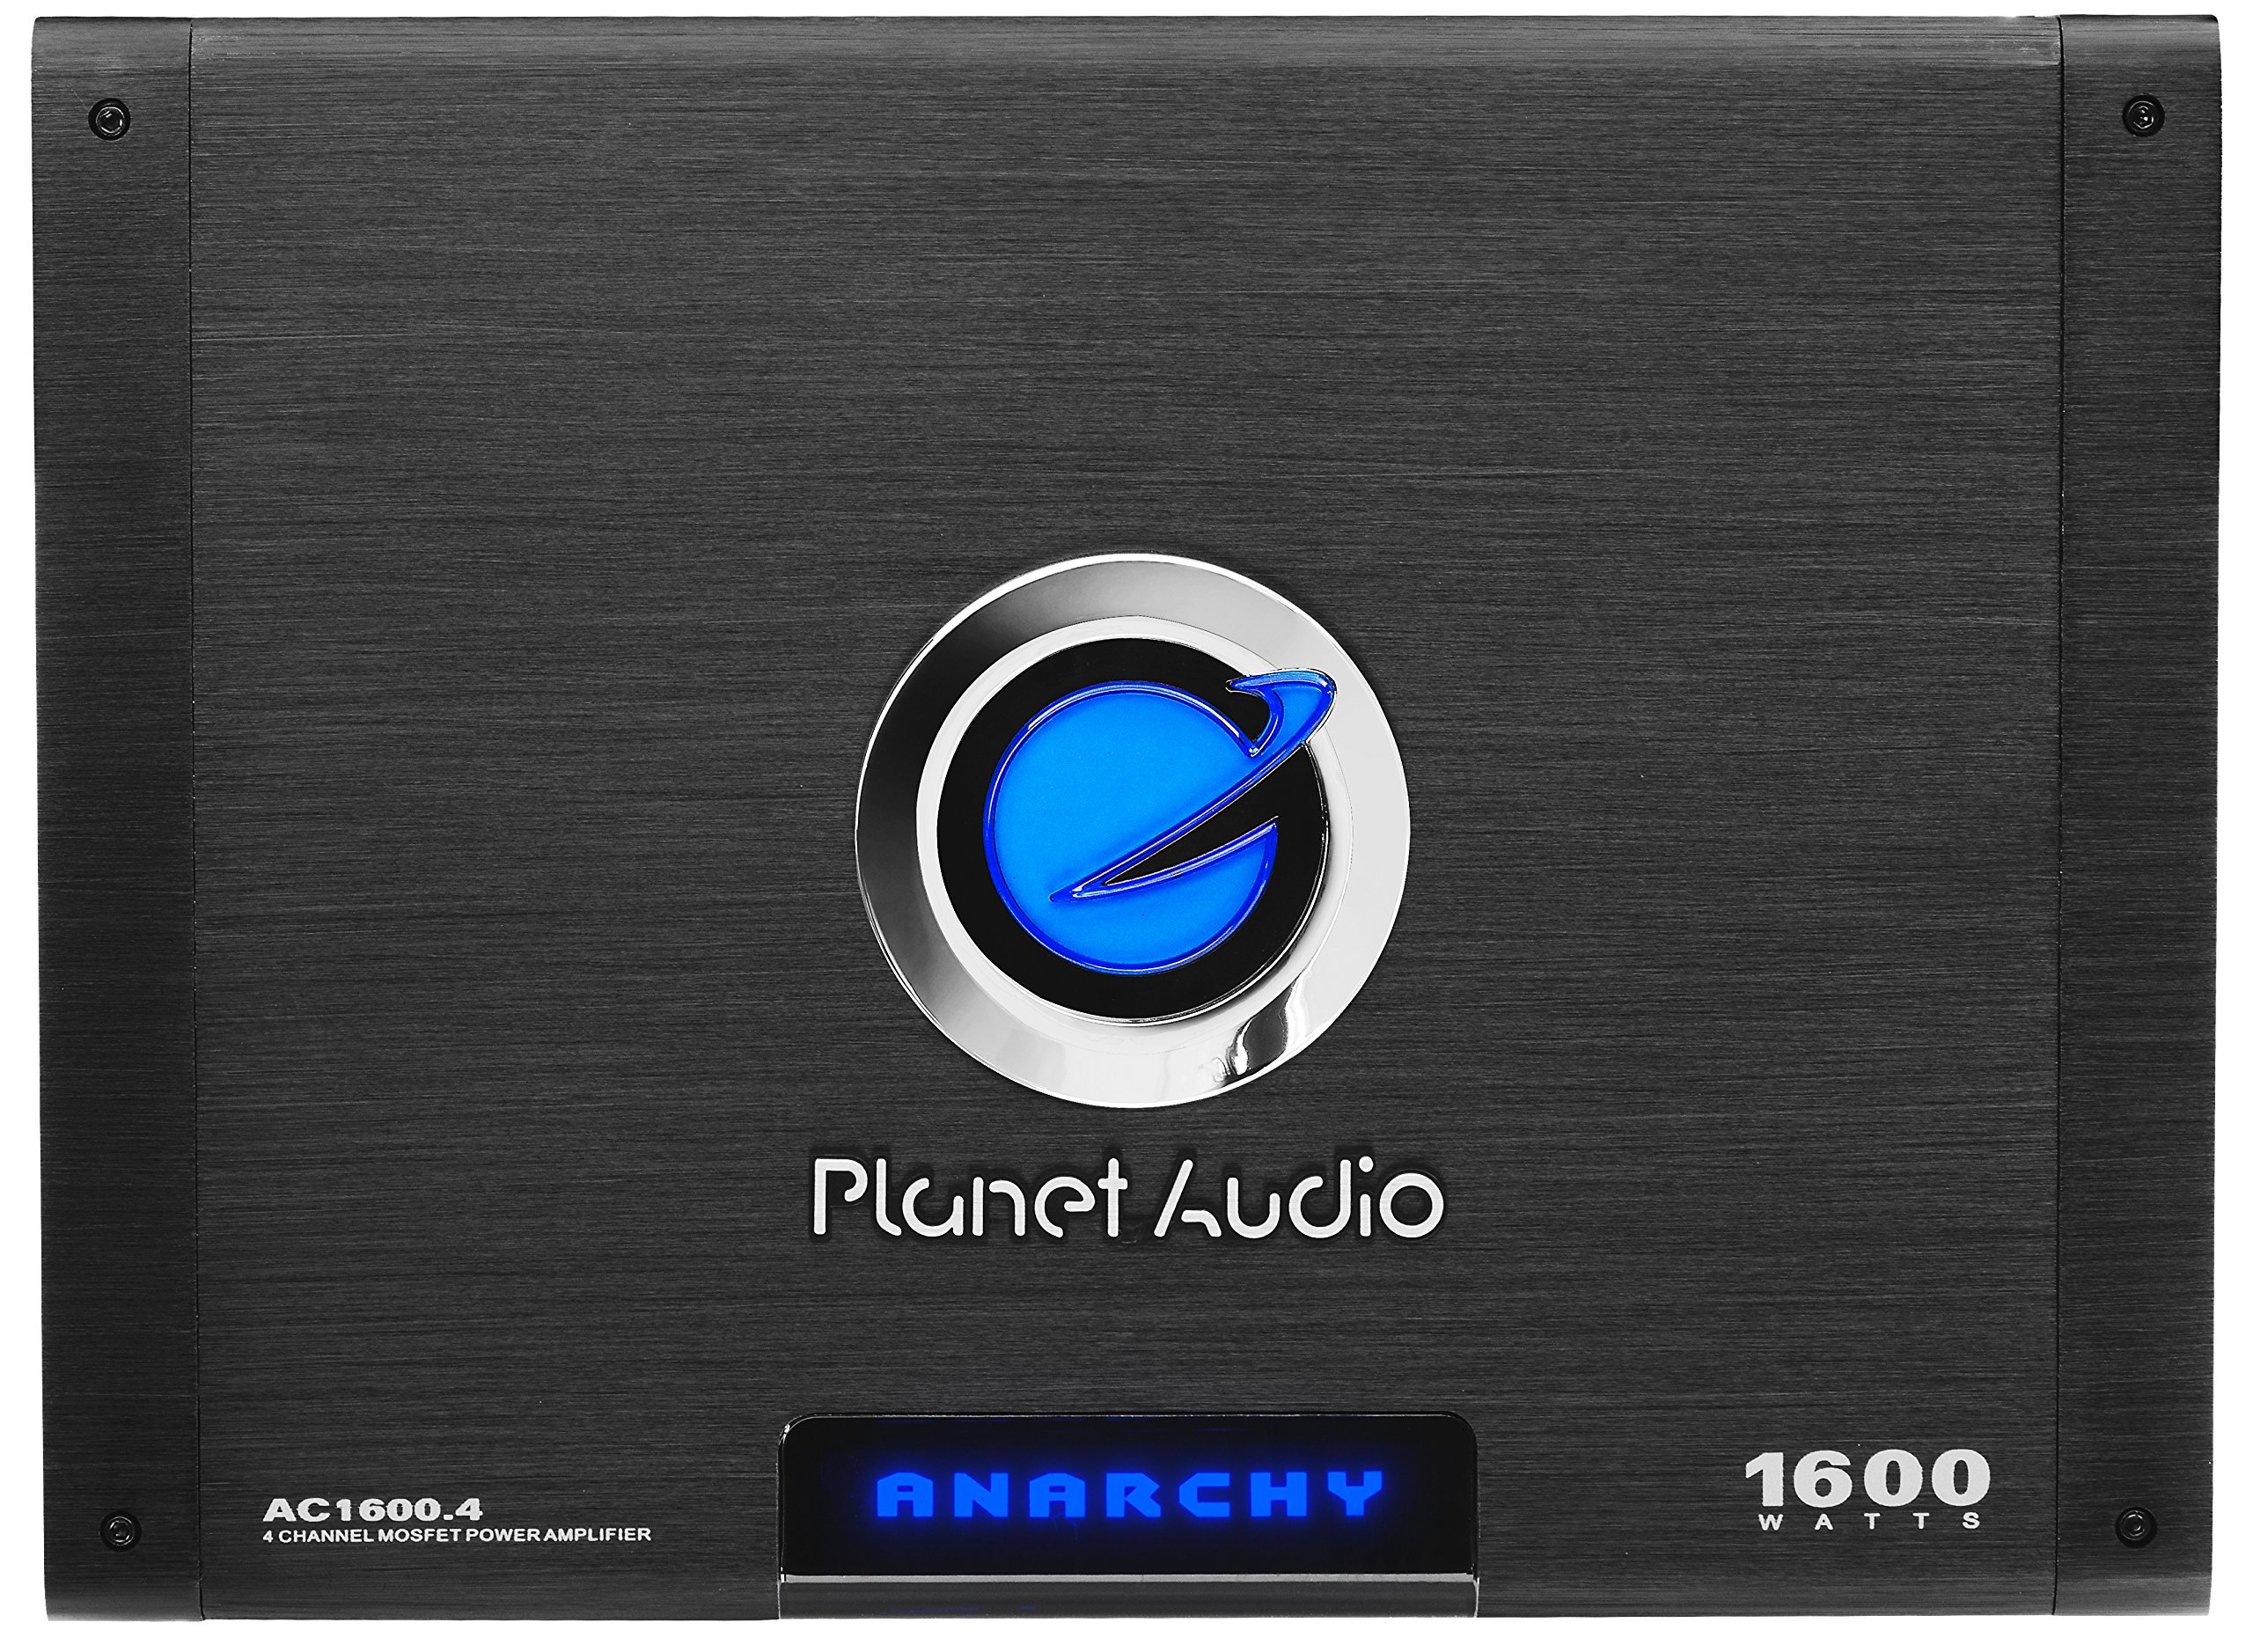 Planet Audio AC1600.4 Anarchy 1600 Watt, 4 Channel, 2/4 Ohm Stable Class A/B, Full Range, Bridgeable, MOSFET Car Amplifier with Remote Subwoofer Control